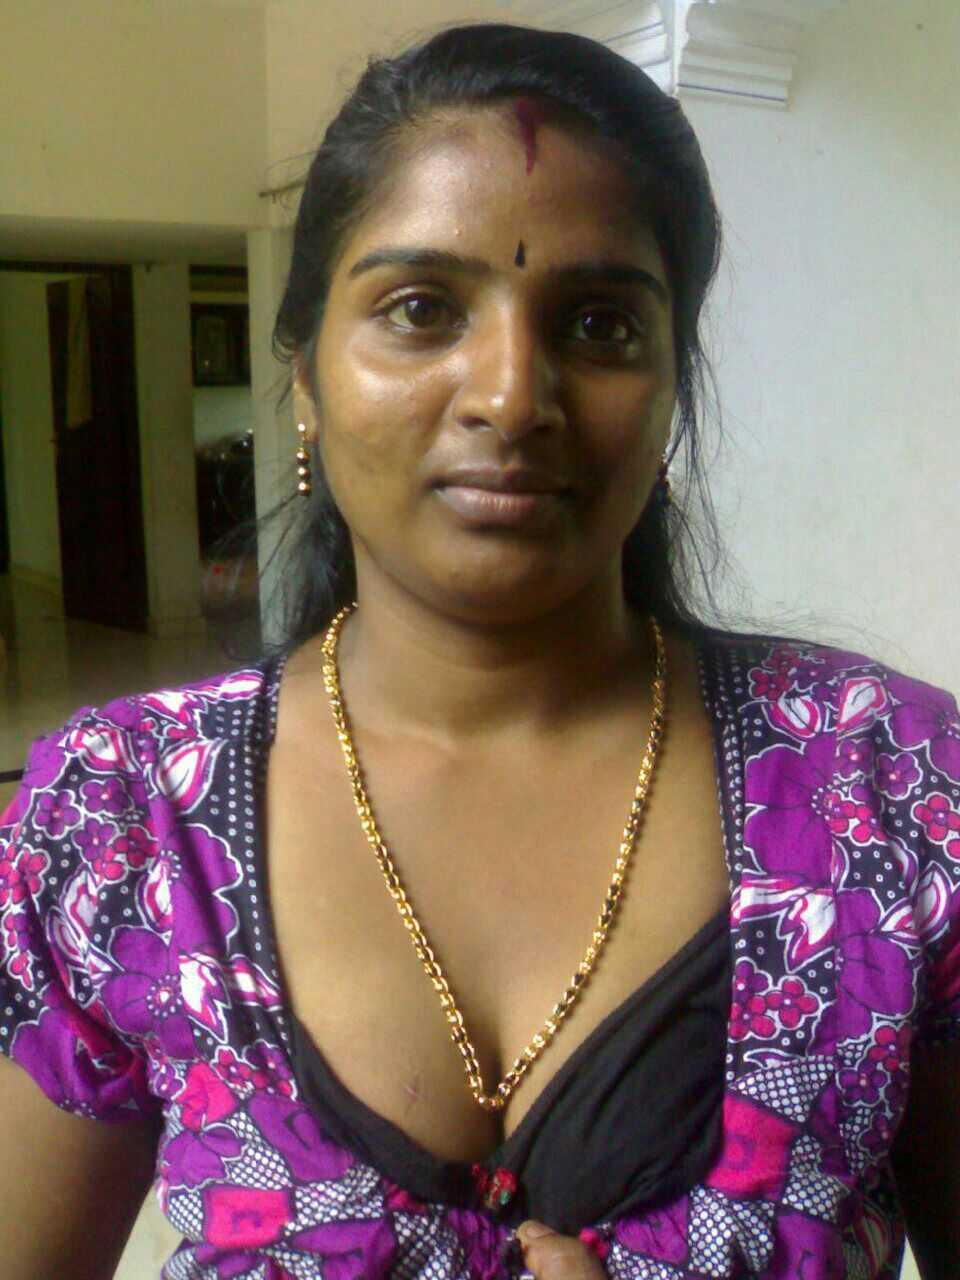 tamil sexy mallu images nude